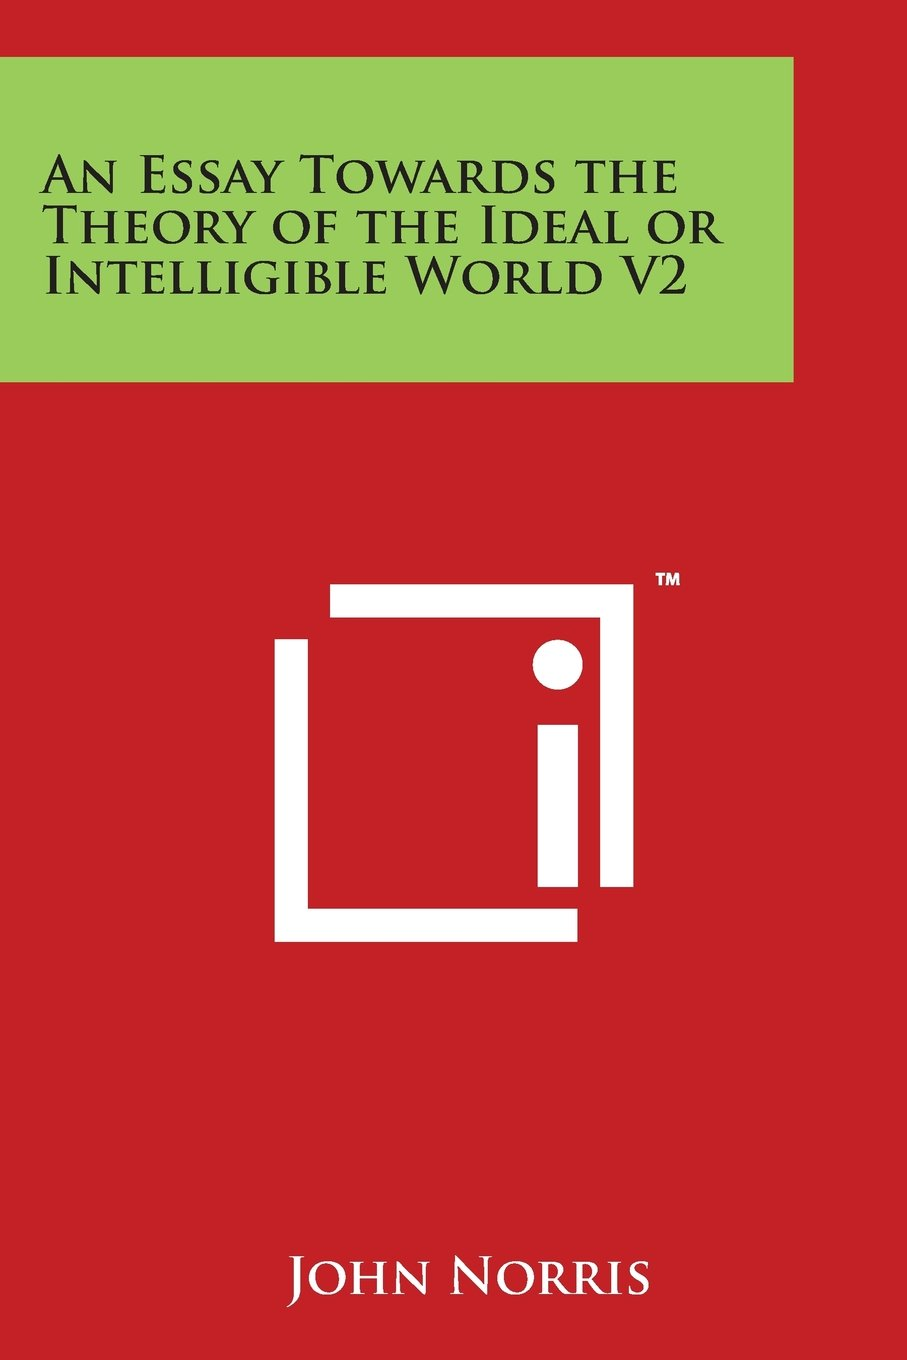 Download An Essay Towards the Theory of the Ideal or Intelligible World V2 PDF